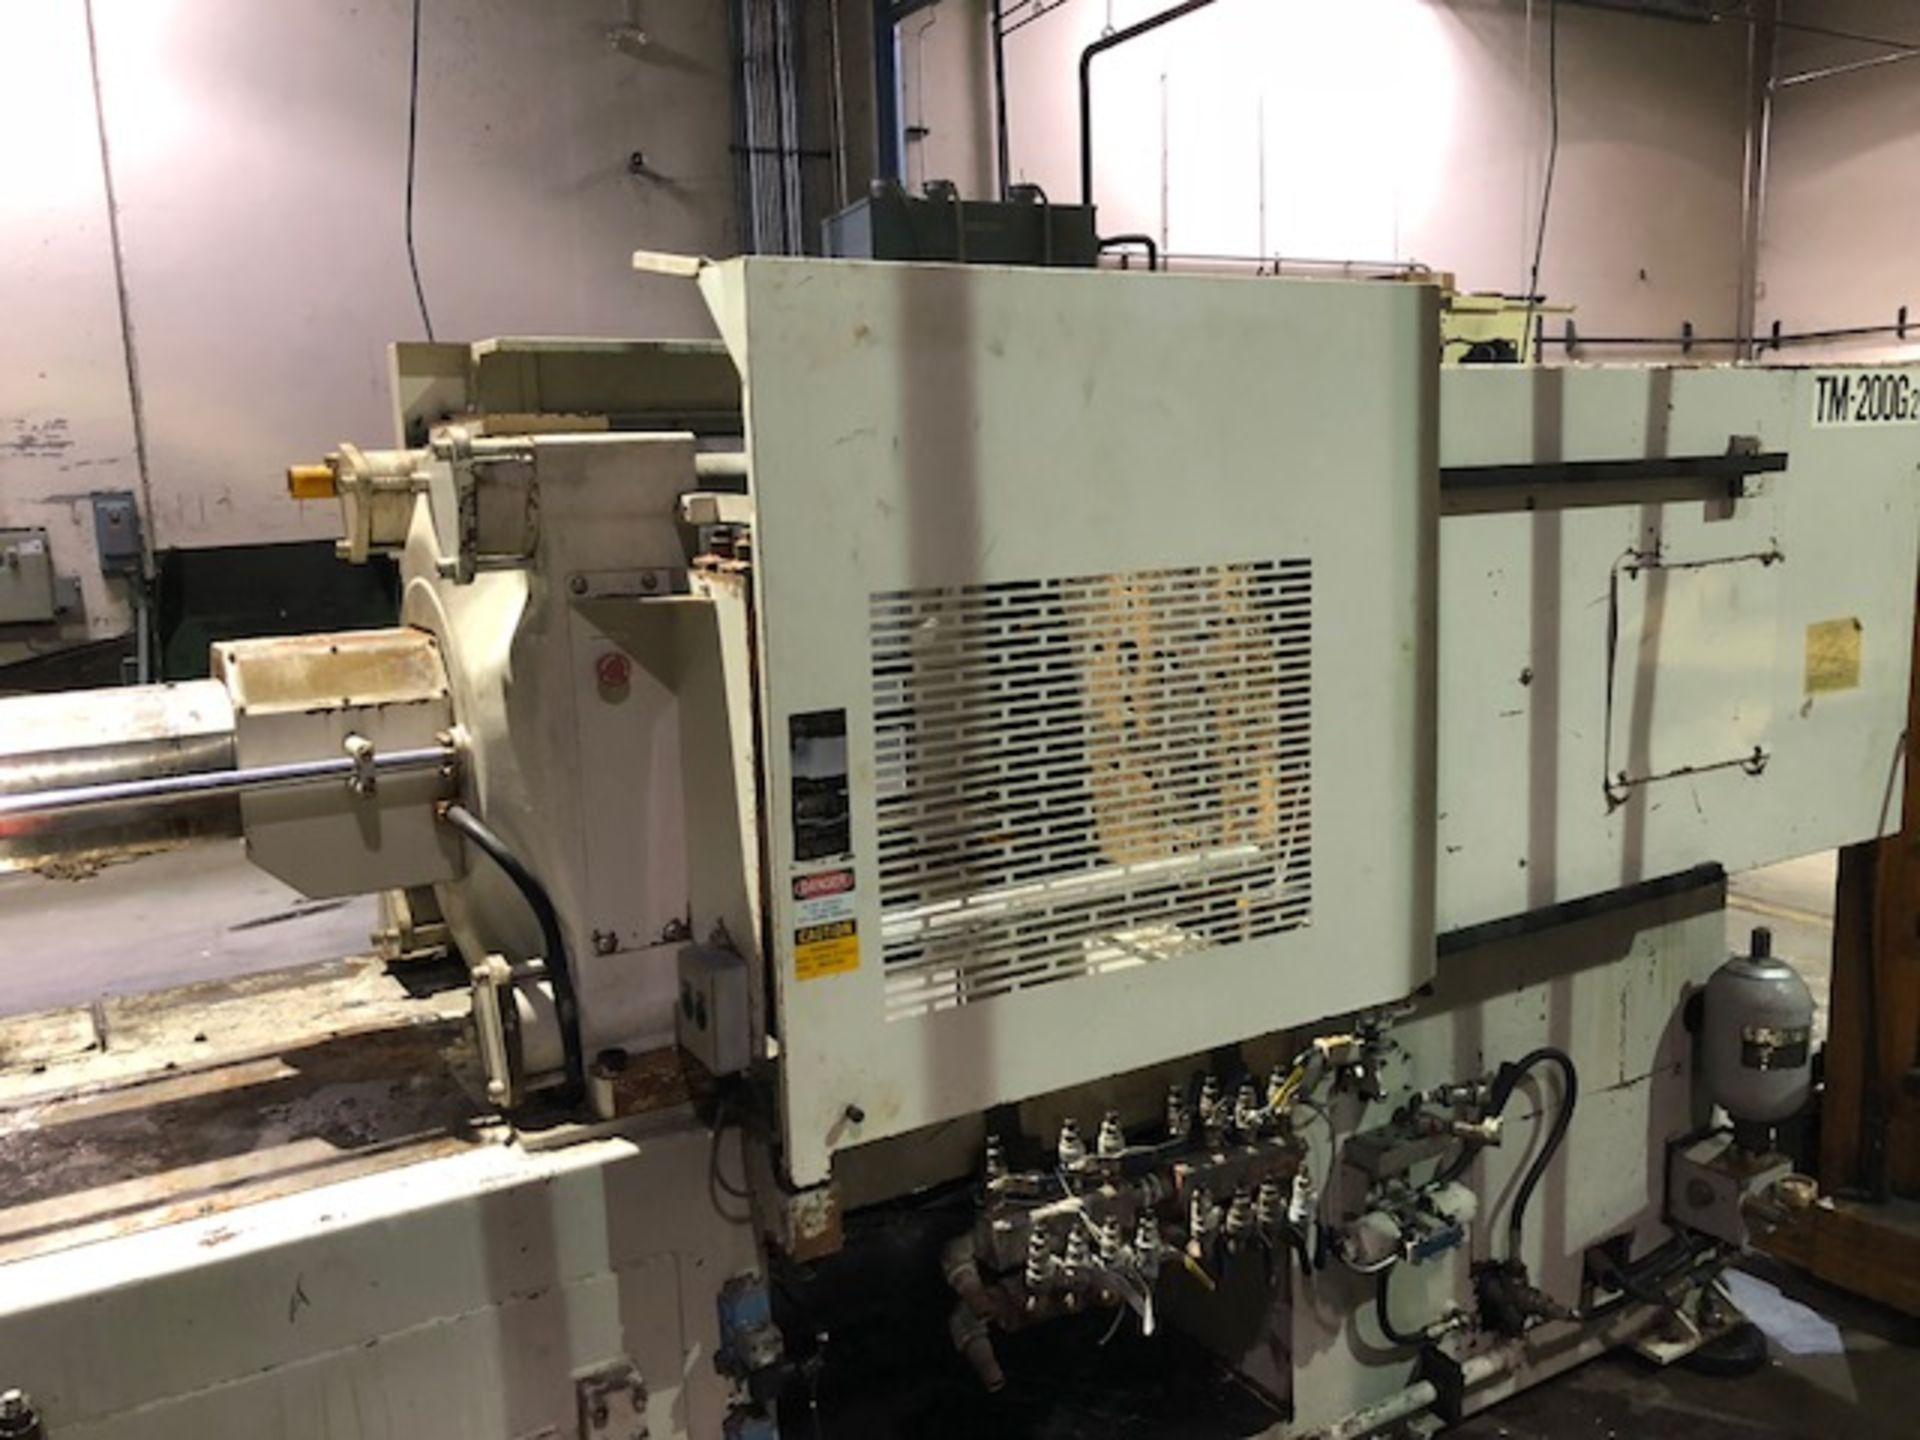 Lot 136 - Toyo TM-200 G2 Plaster Injection Molding